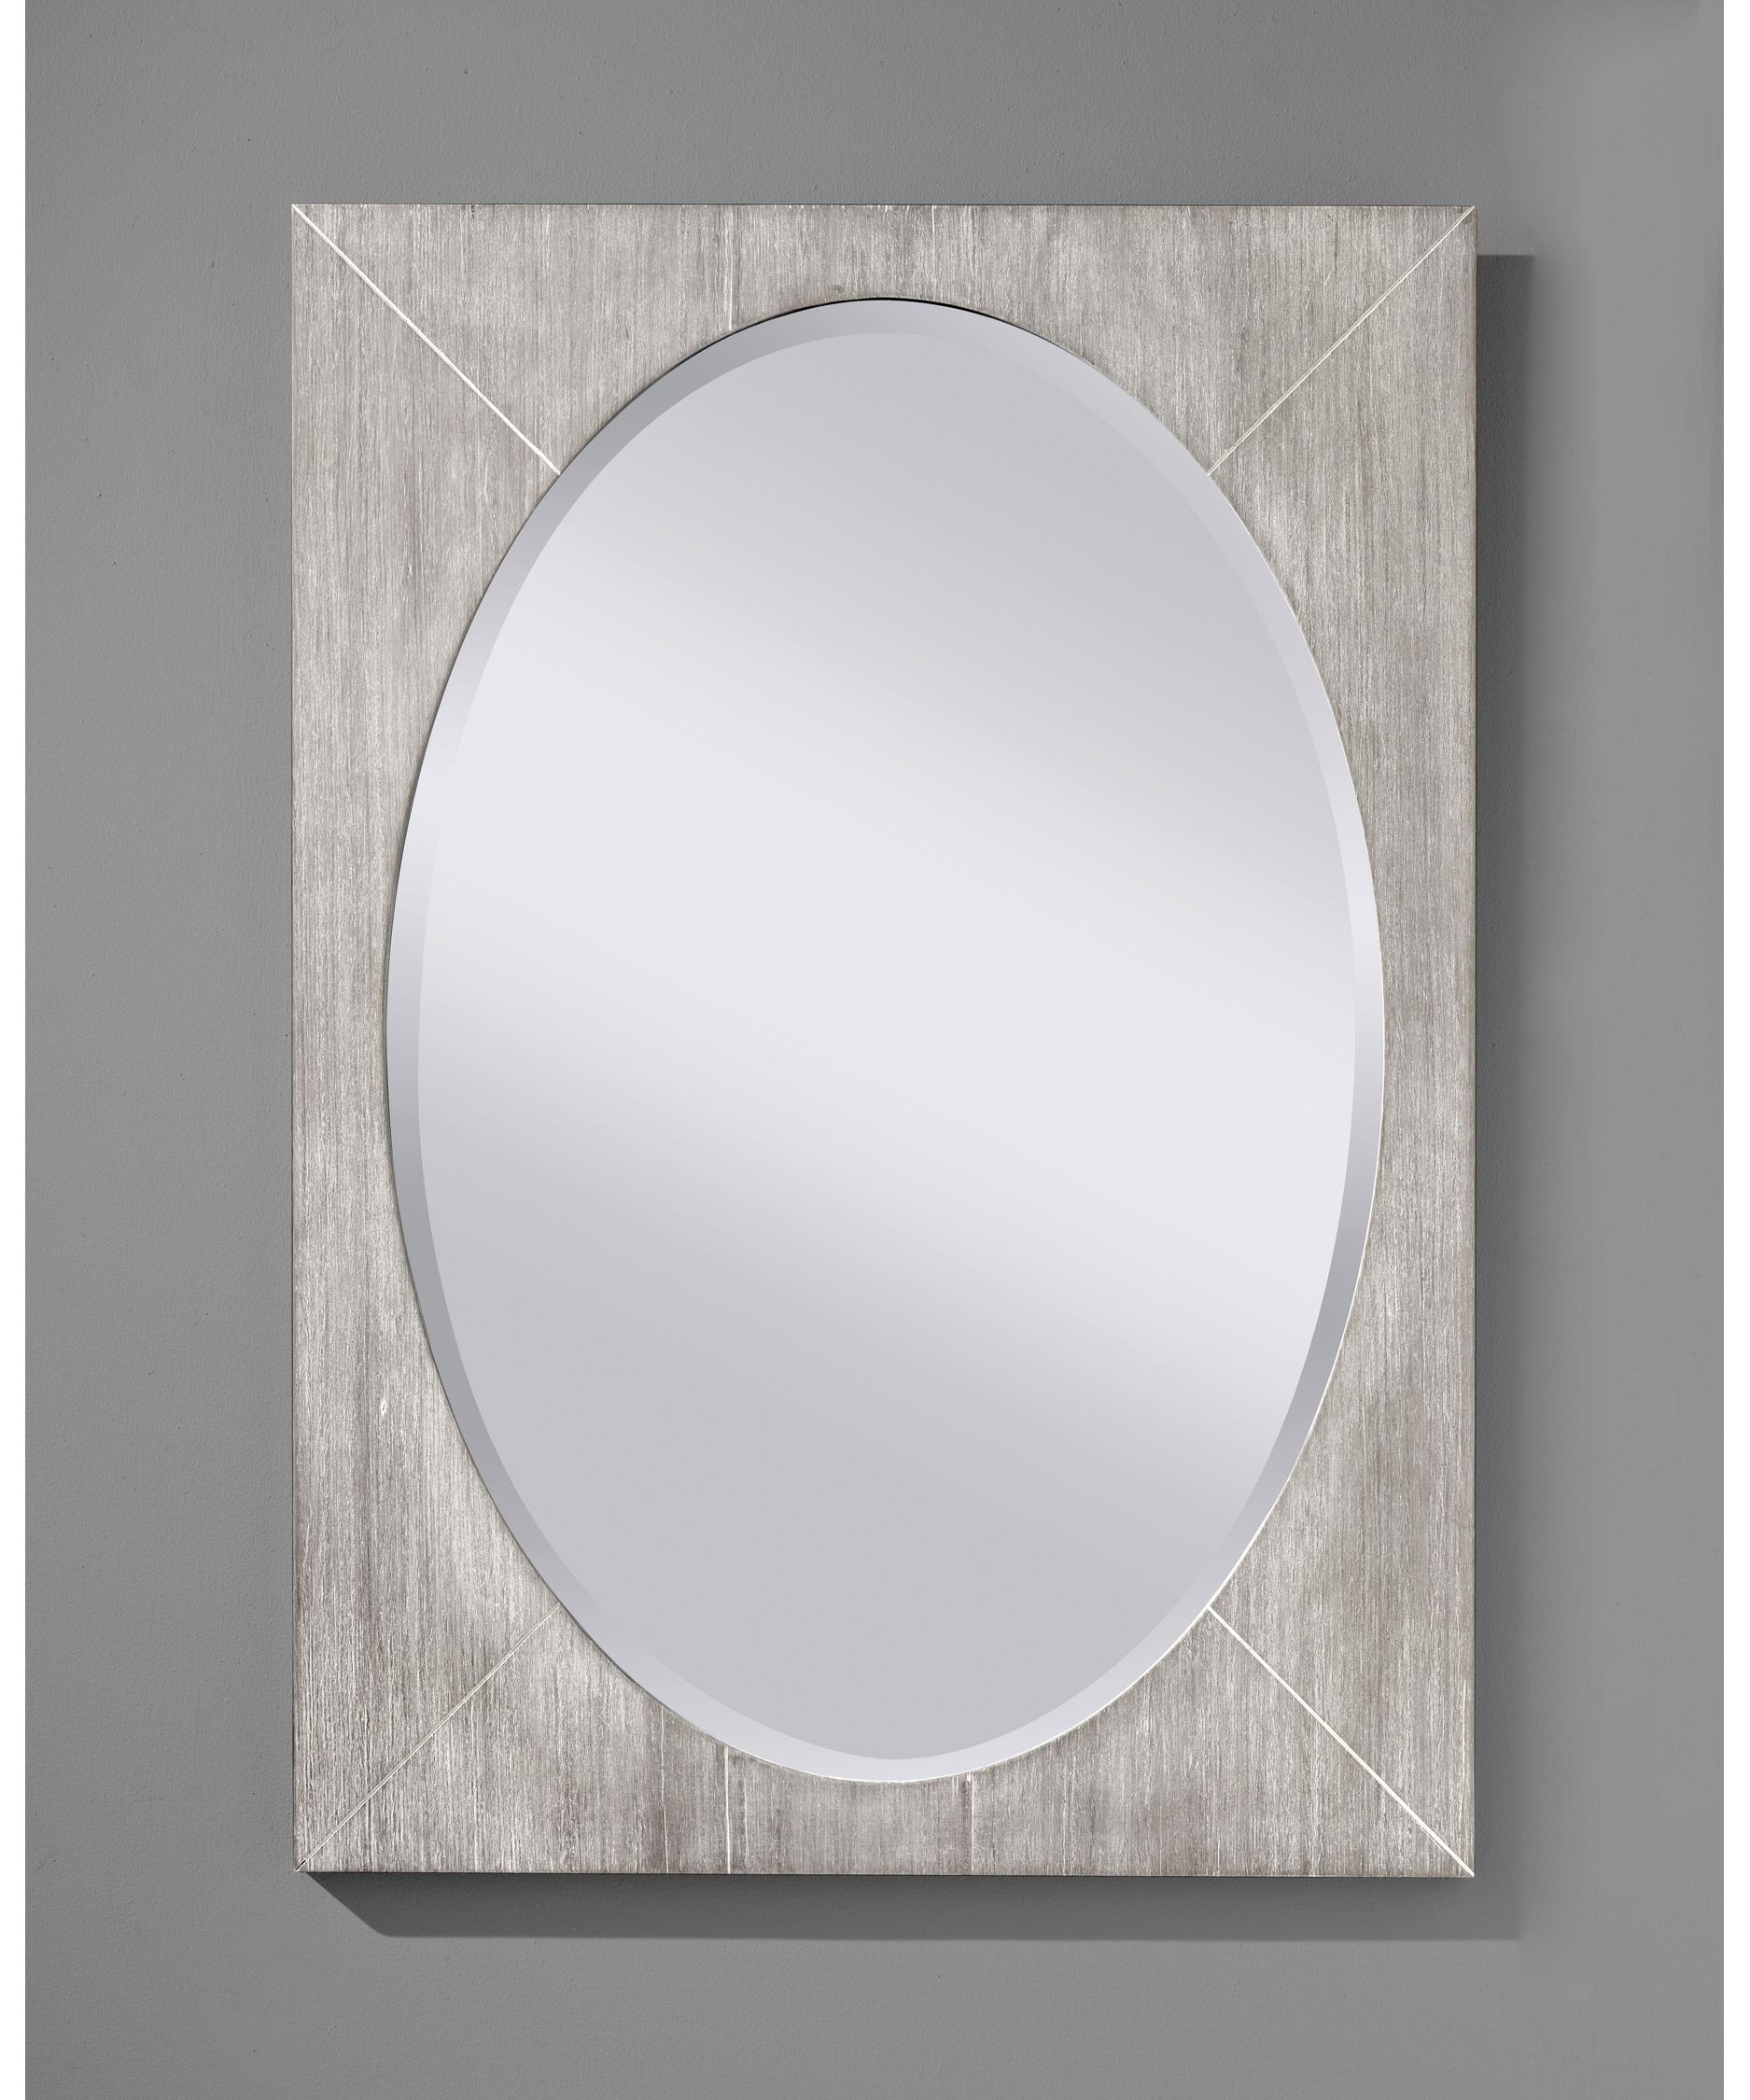 Murray Feiss Mr1164 Seaside Oval Wall Mirror Capitol Lighting 1